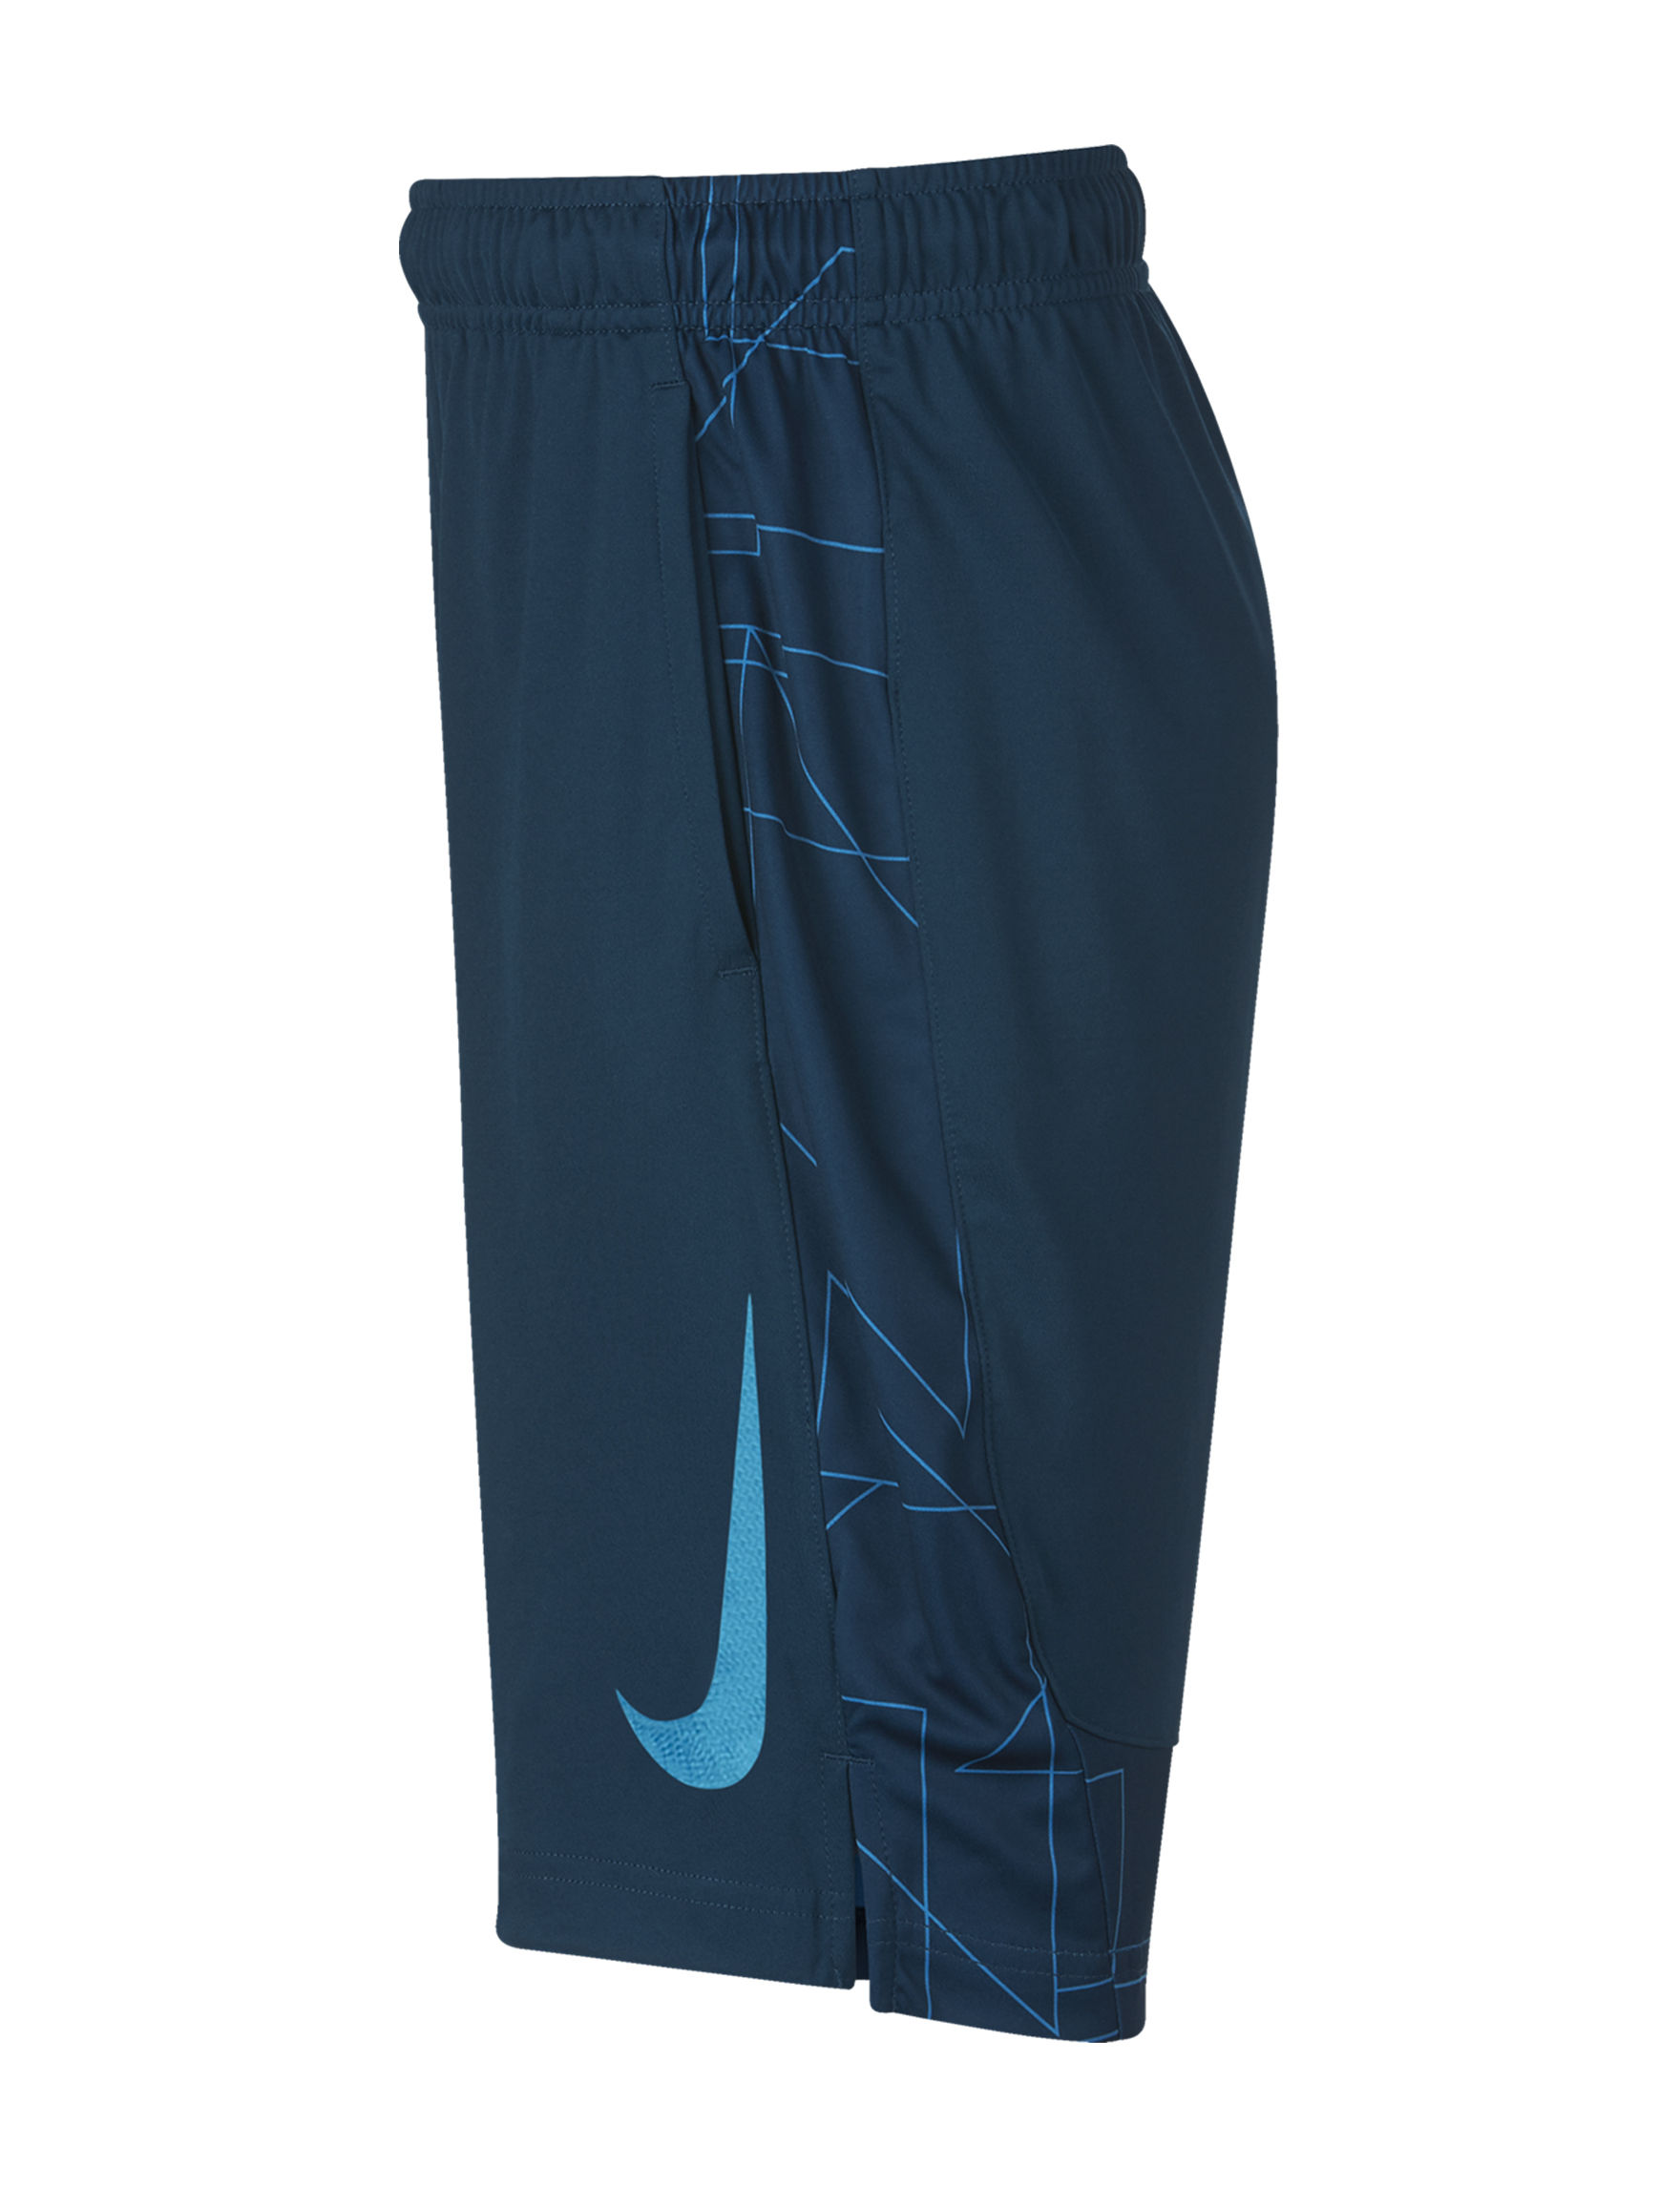 huge discount ff743 2fb6c Nike Dry Legacy Color Block Geometric Shorts - Boys 6-20   Stage Stores